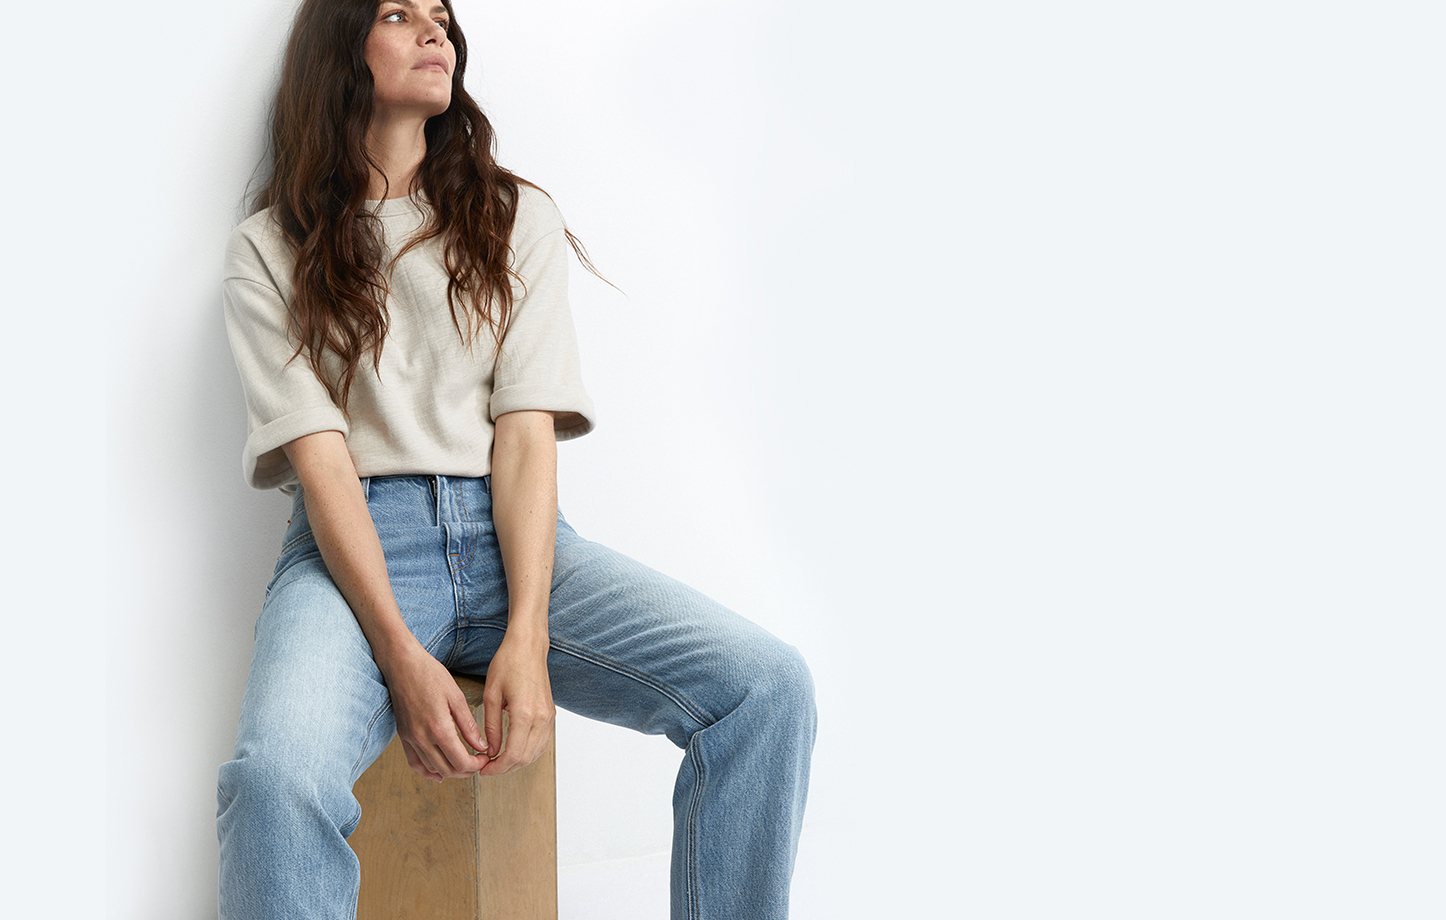 Vintage-inspired jeans, skinny jeans, and wide-leg jeans. Essential fall denim.